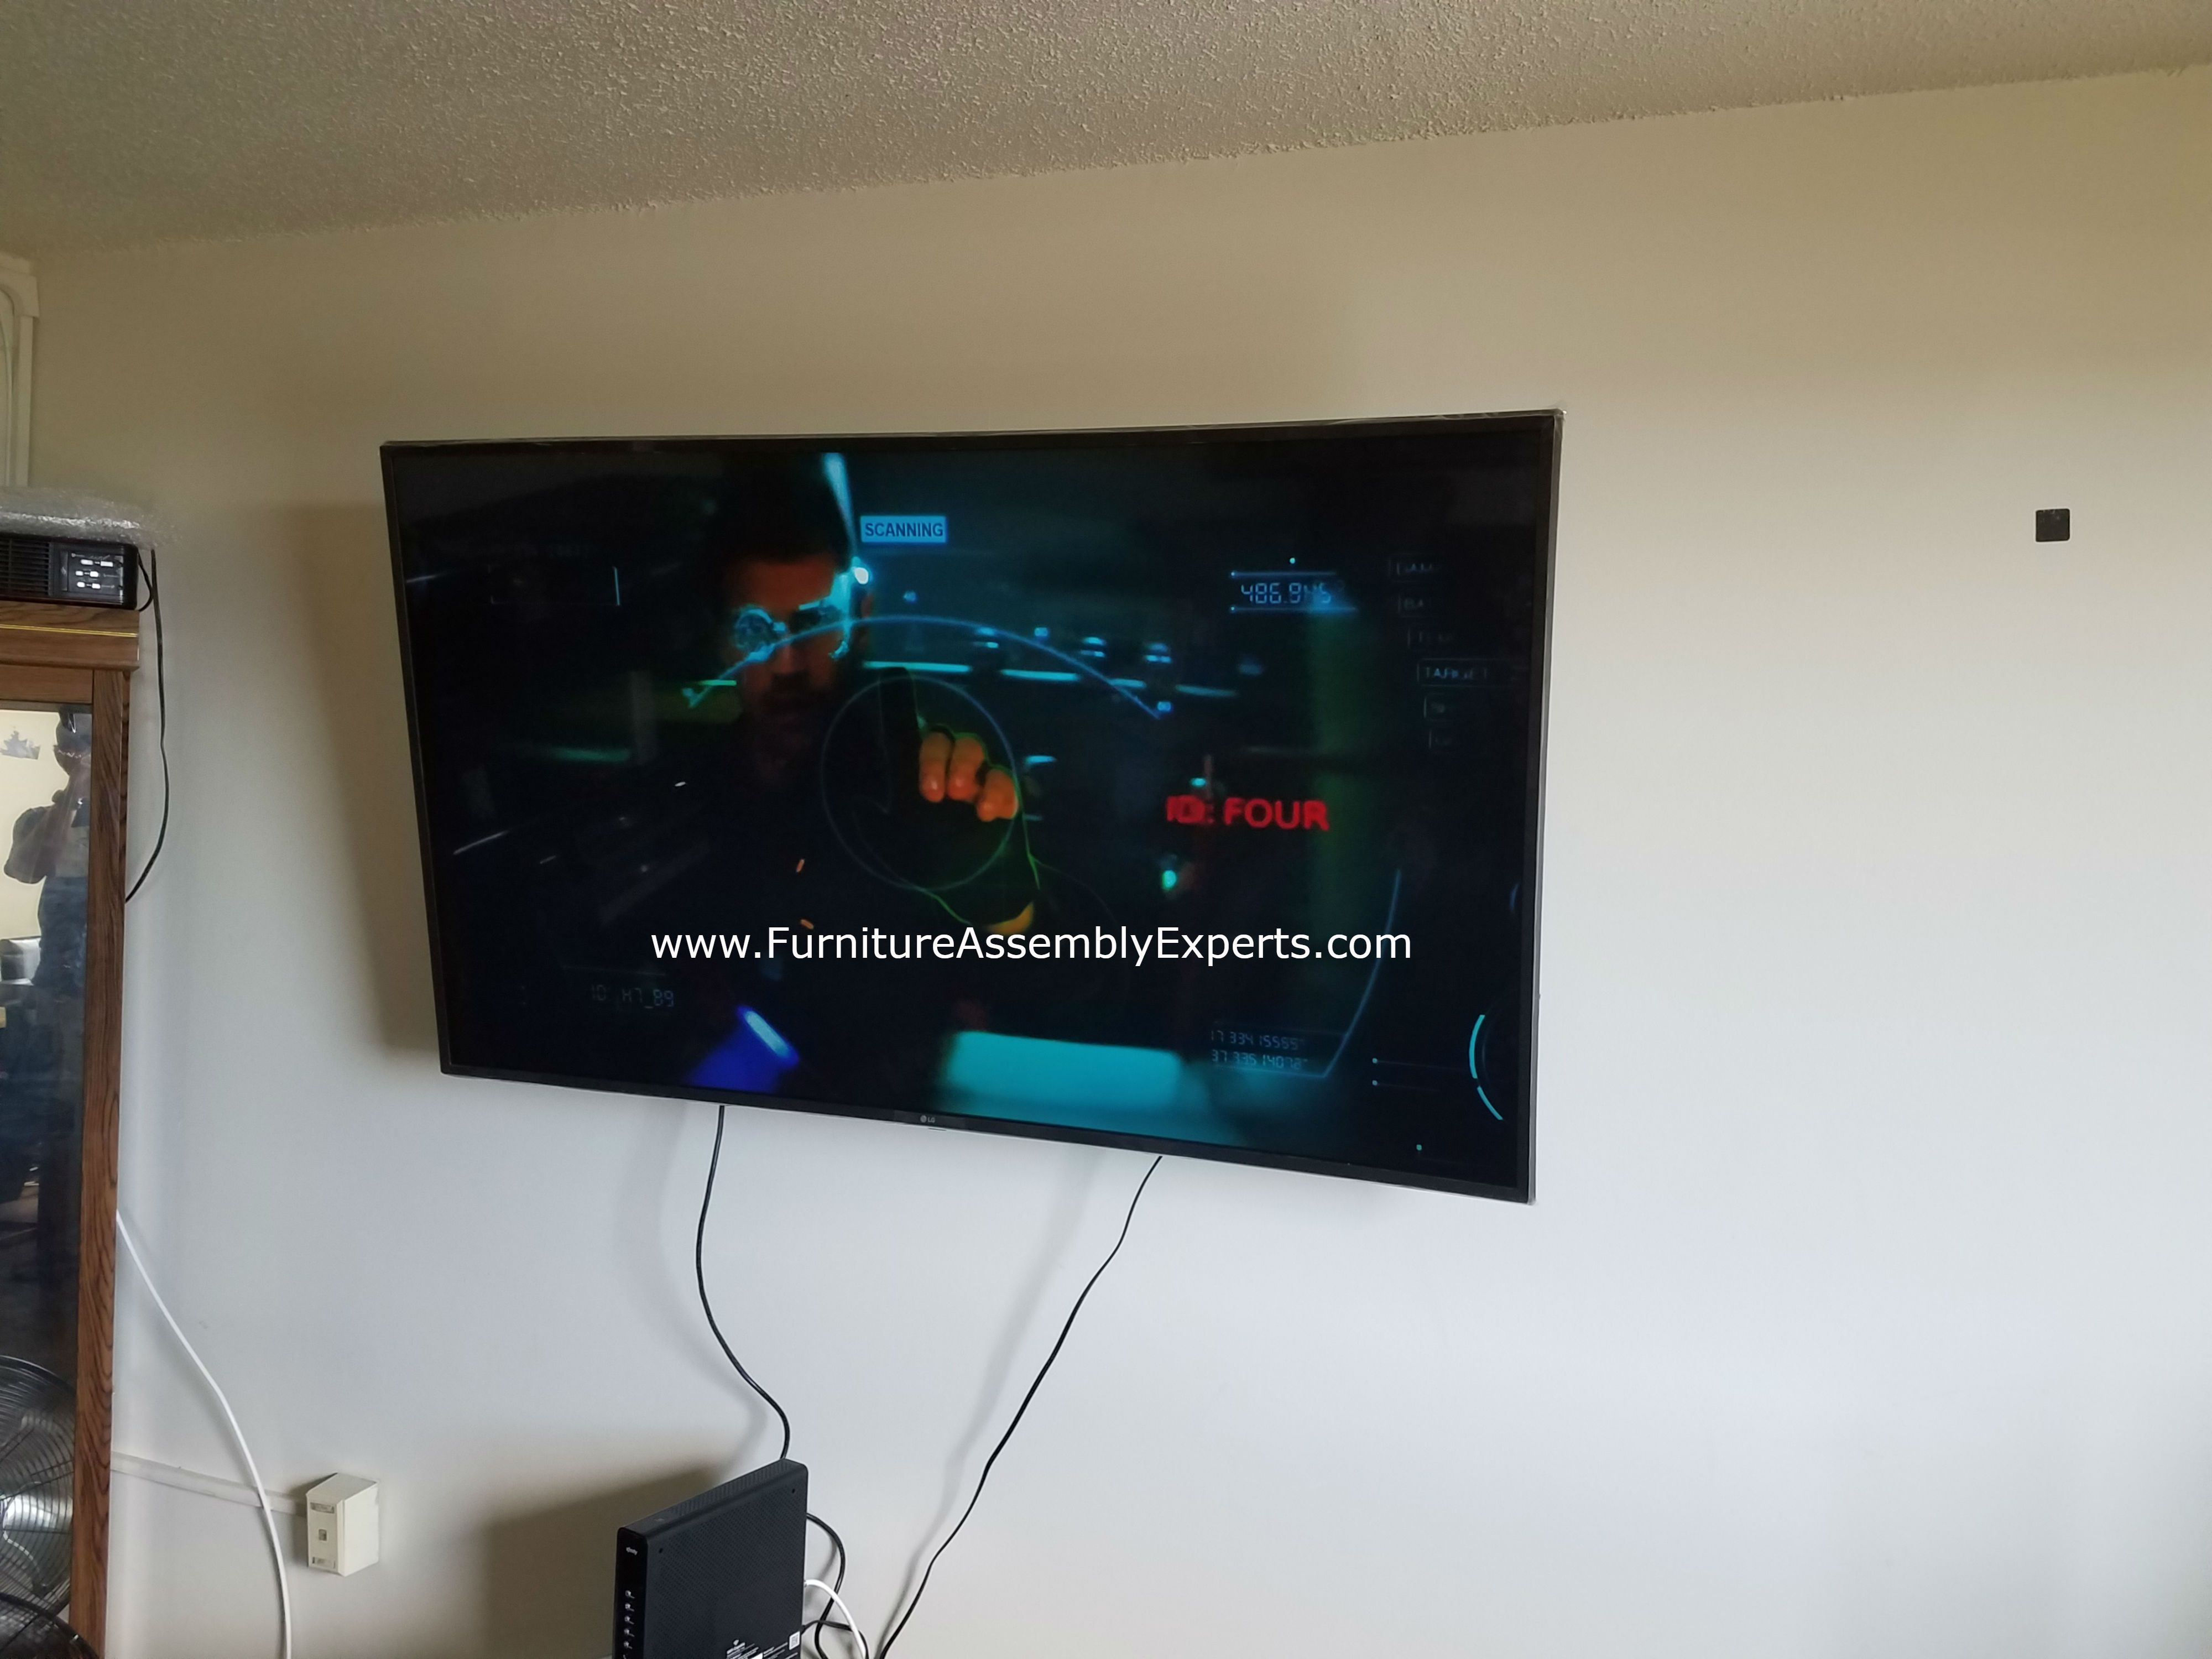 Tv Wall Installers In Annapolis Maryland By Furniture Assembly Experts Call 2407646143 Tv Wall Tv Wall Installation Wall Mounted Tv